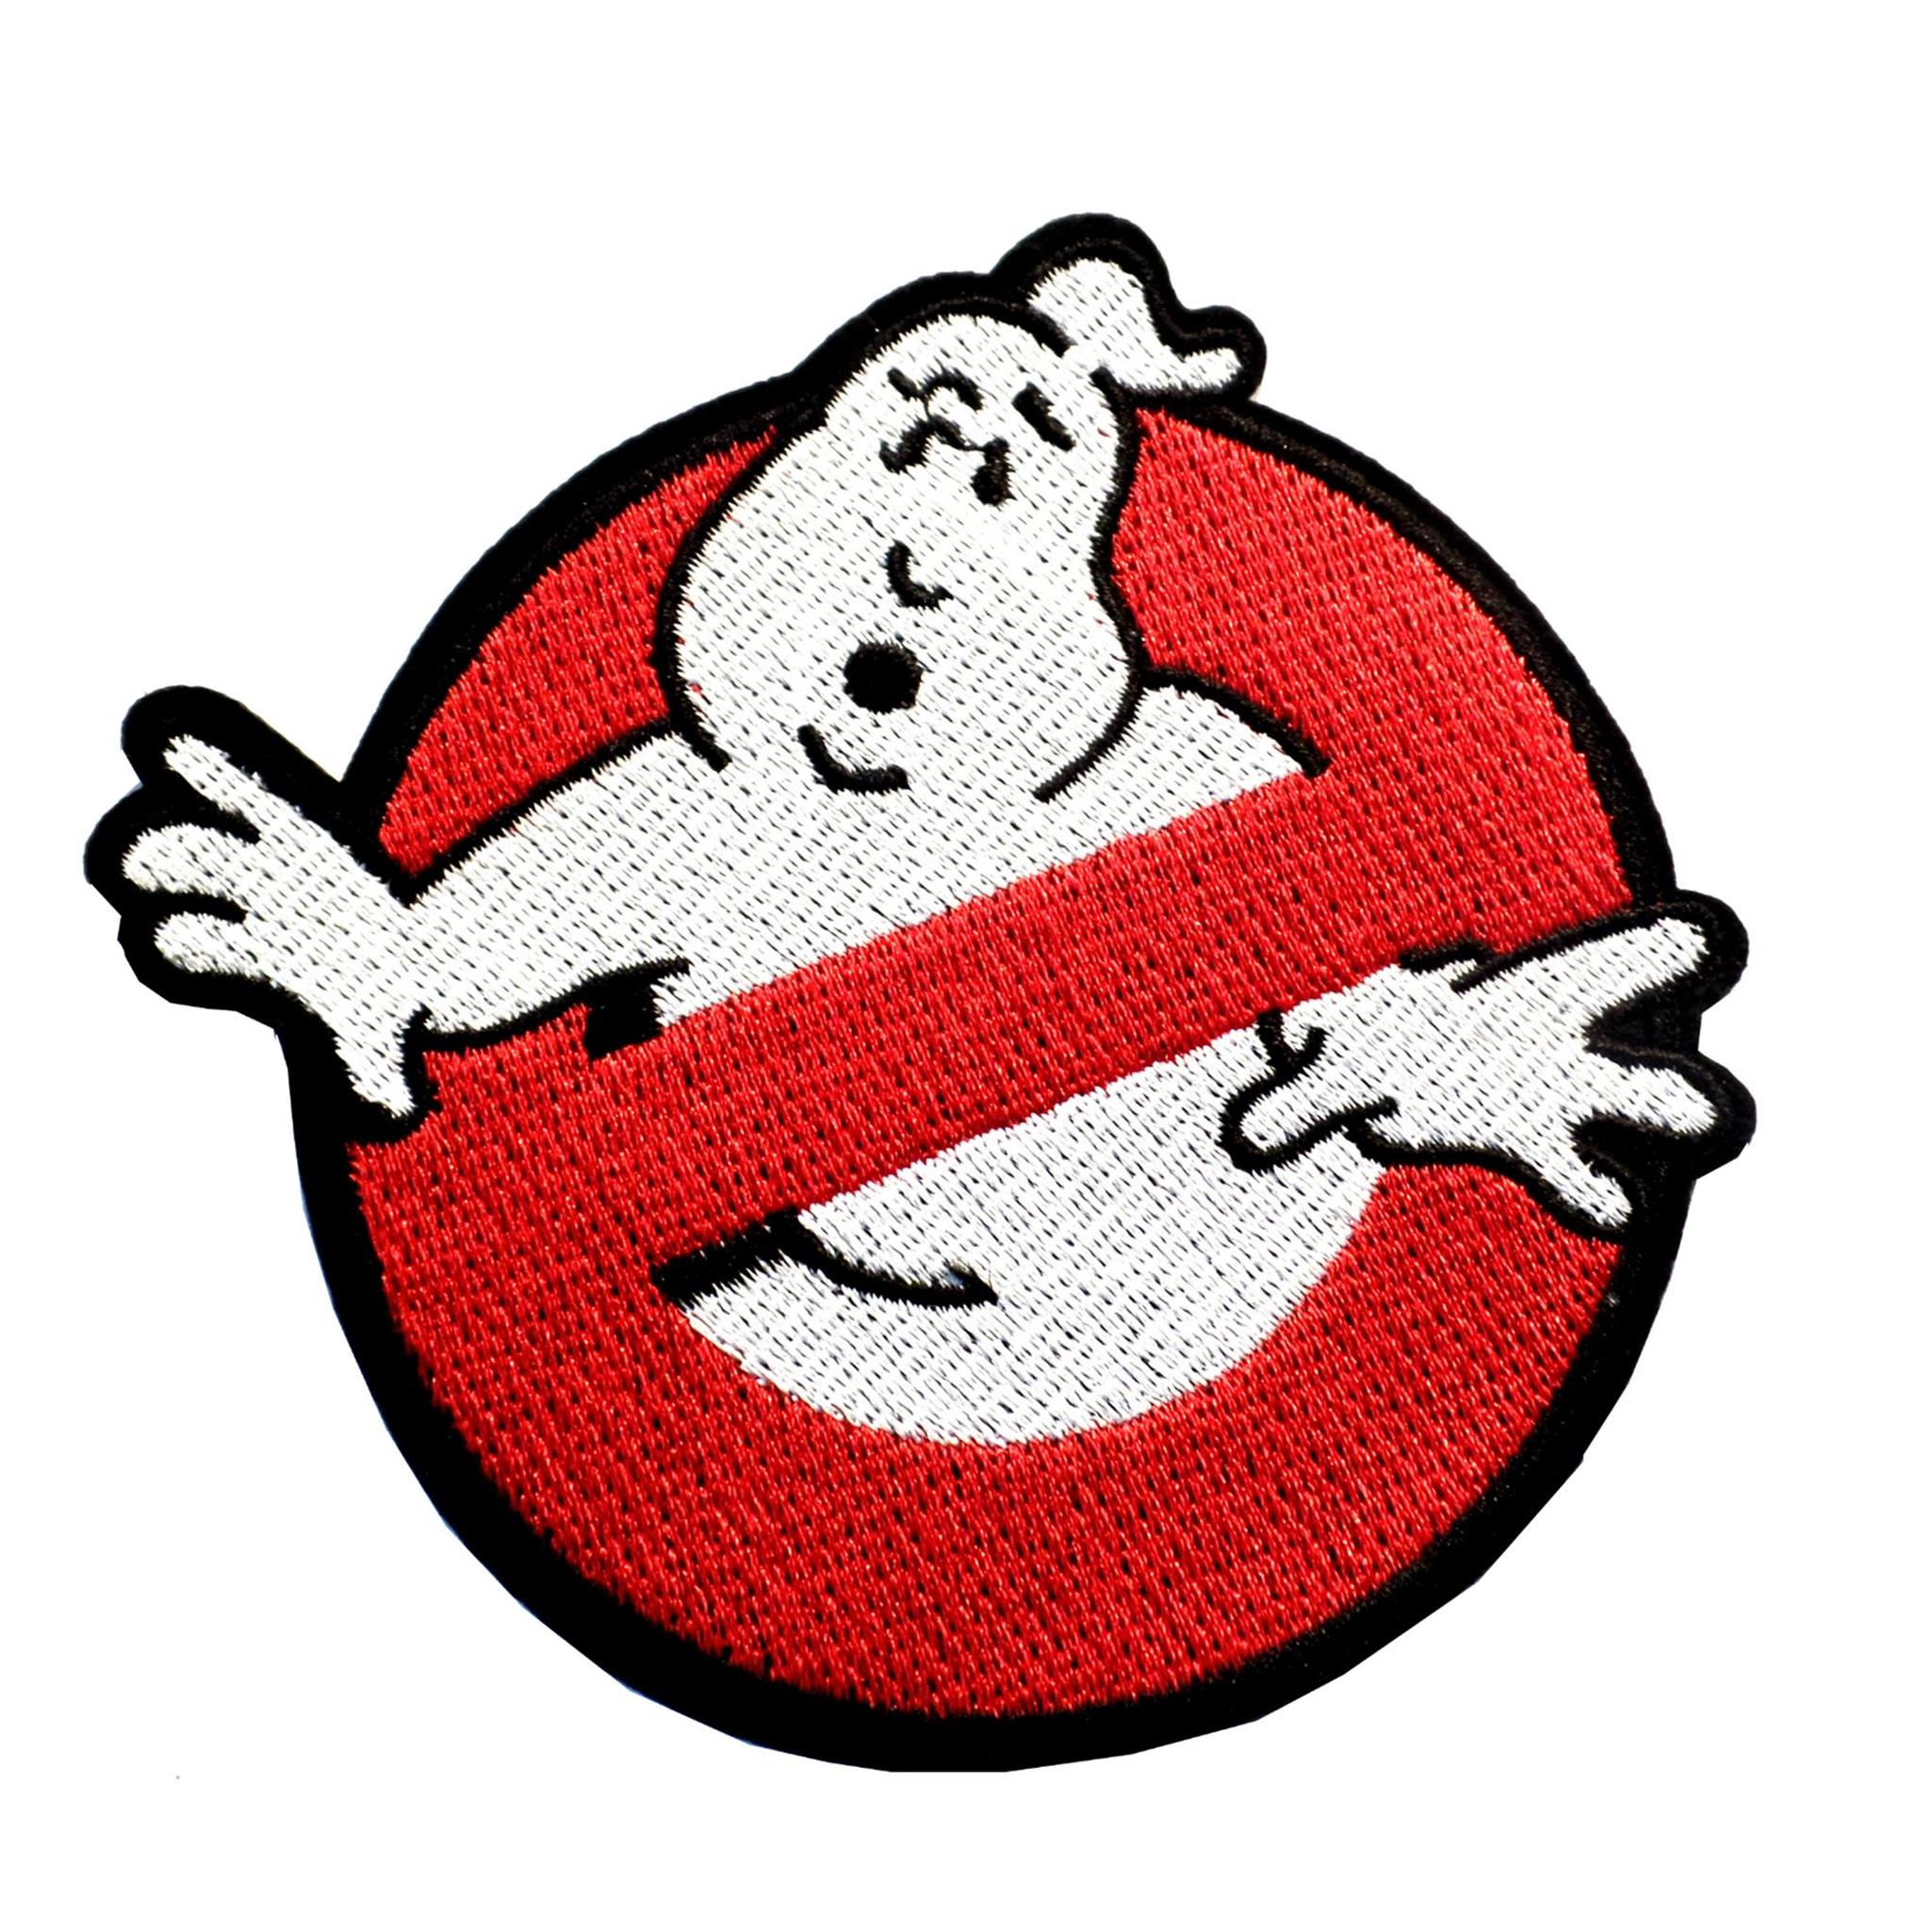 "Superheroes Ghostbusters 5"" Movie Logo Embroidered Iron/Sew-on Applique Patch"